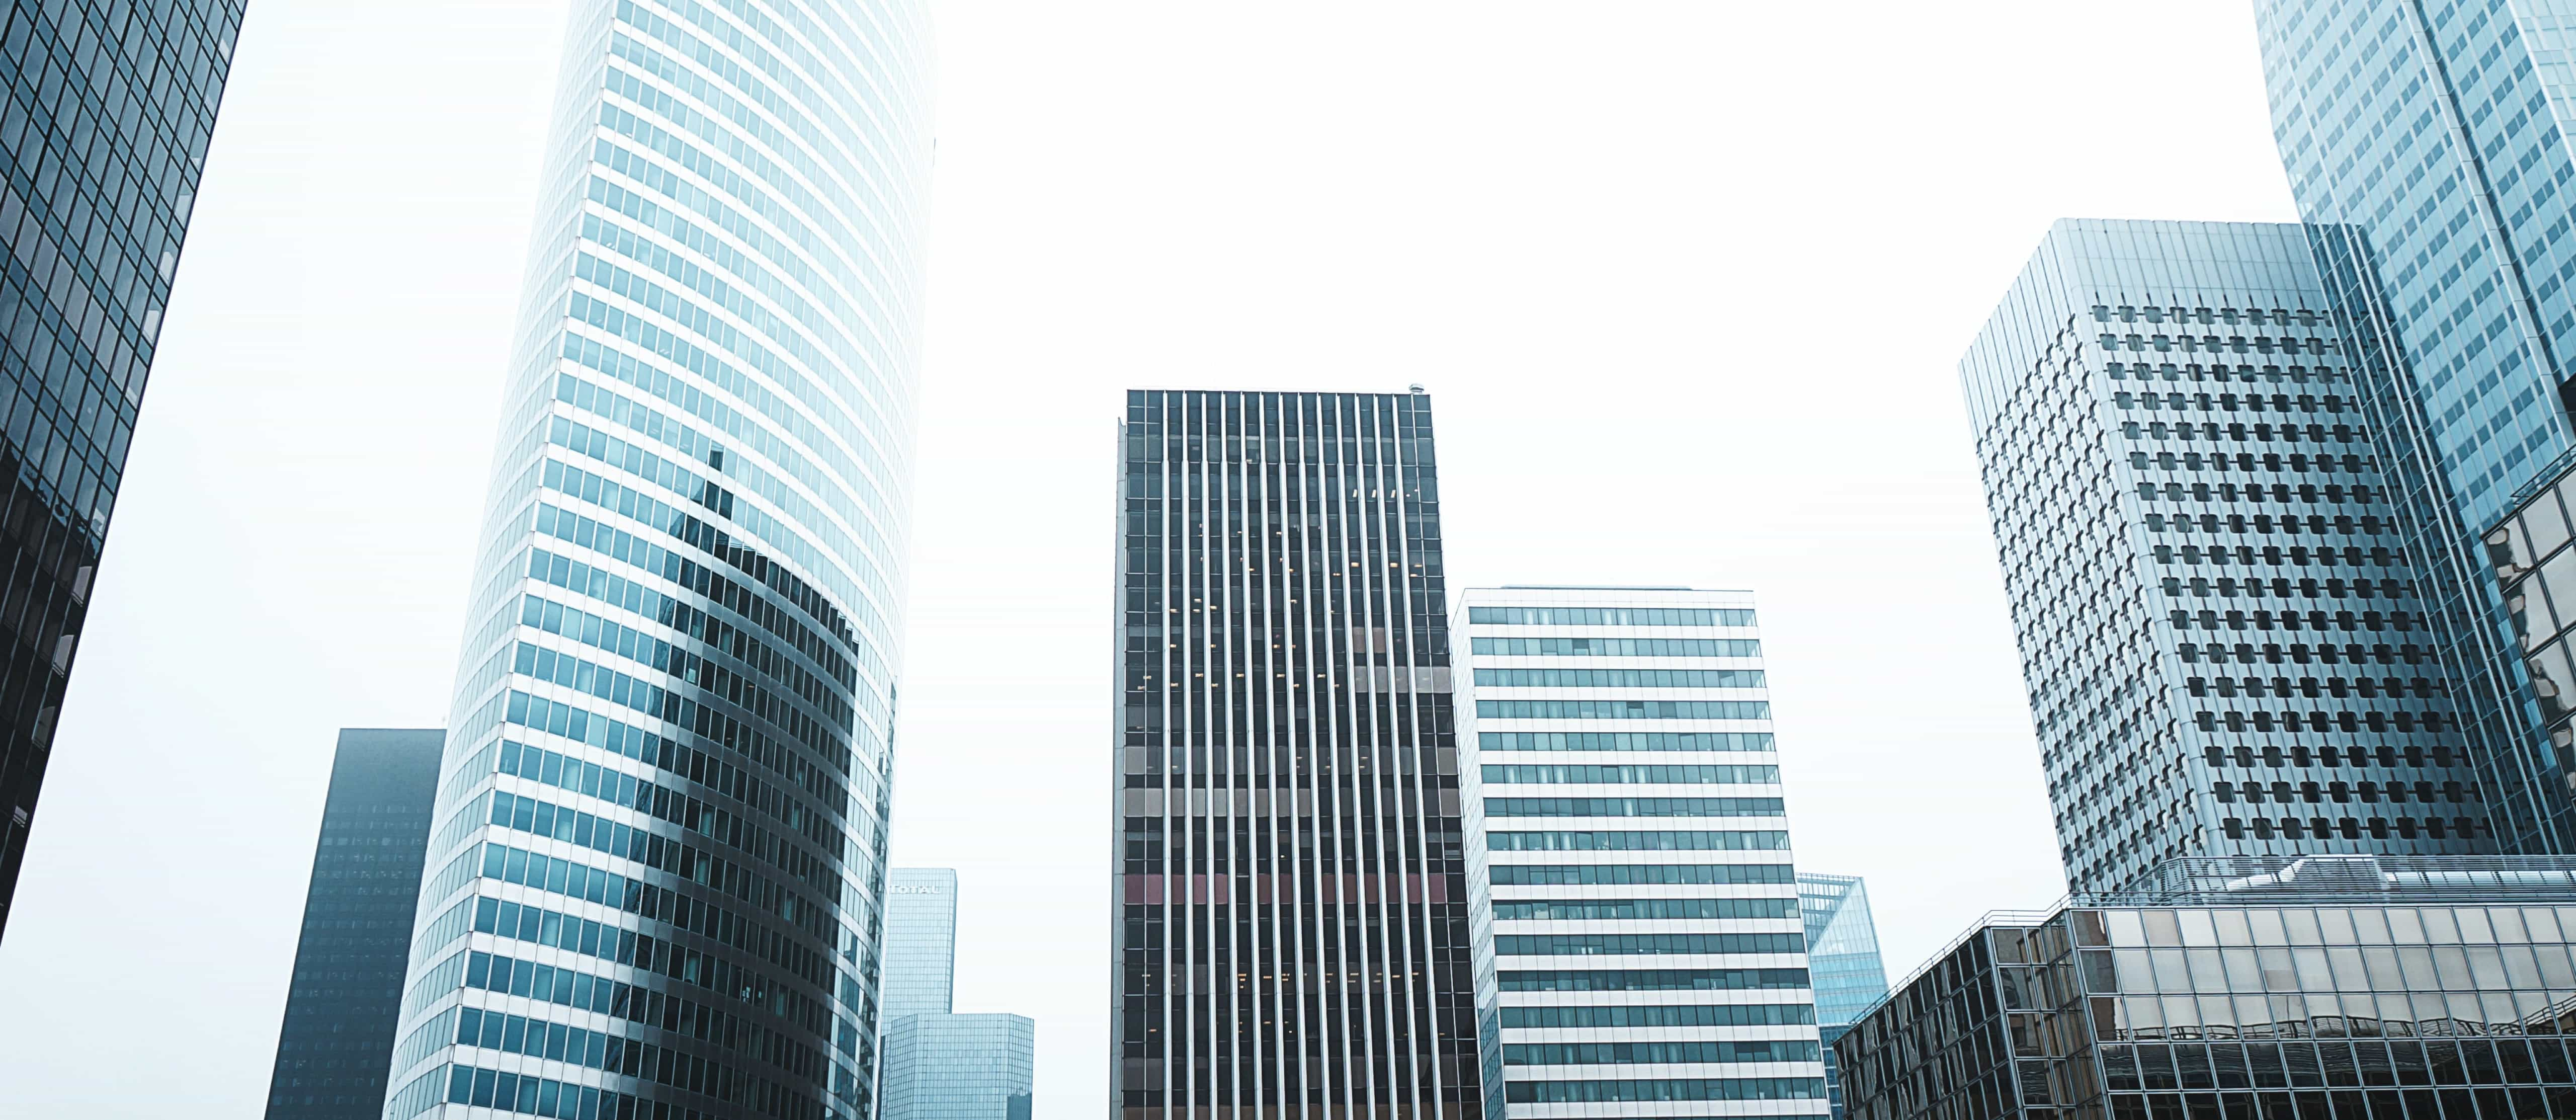 Skyscrapers in a city